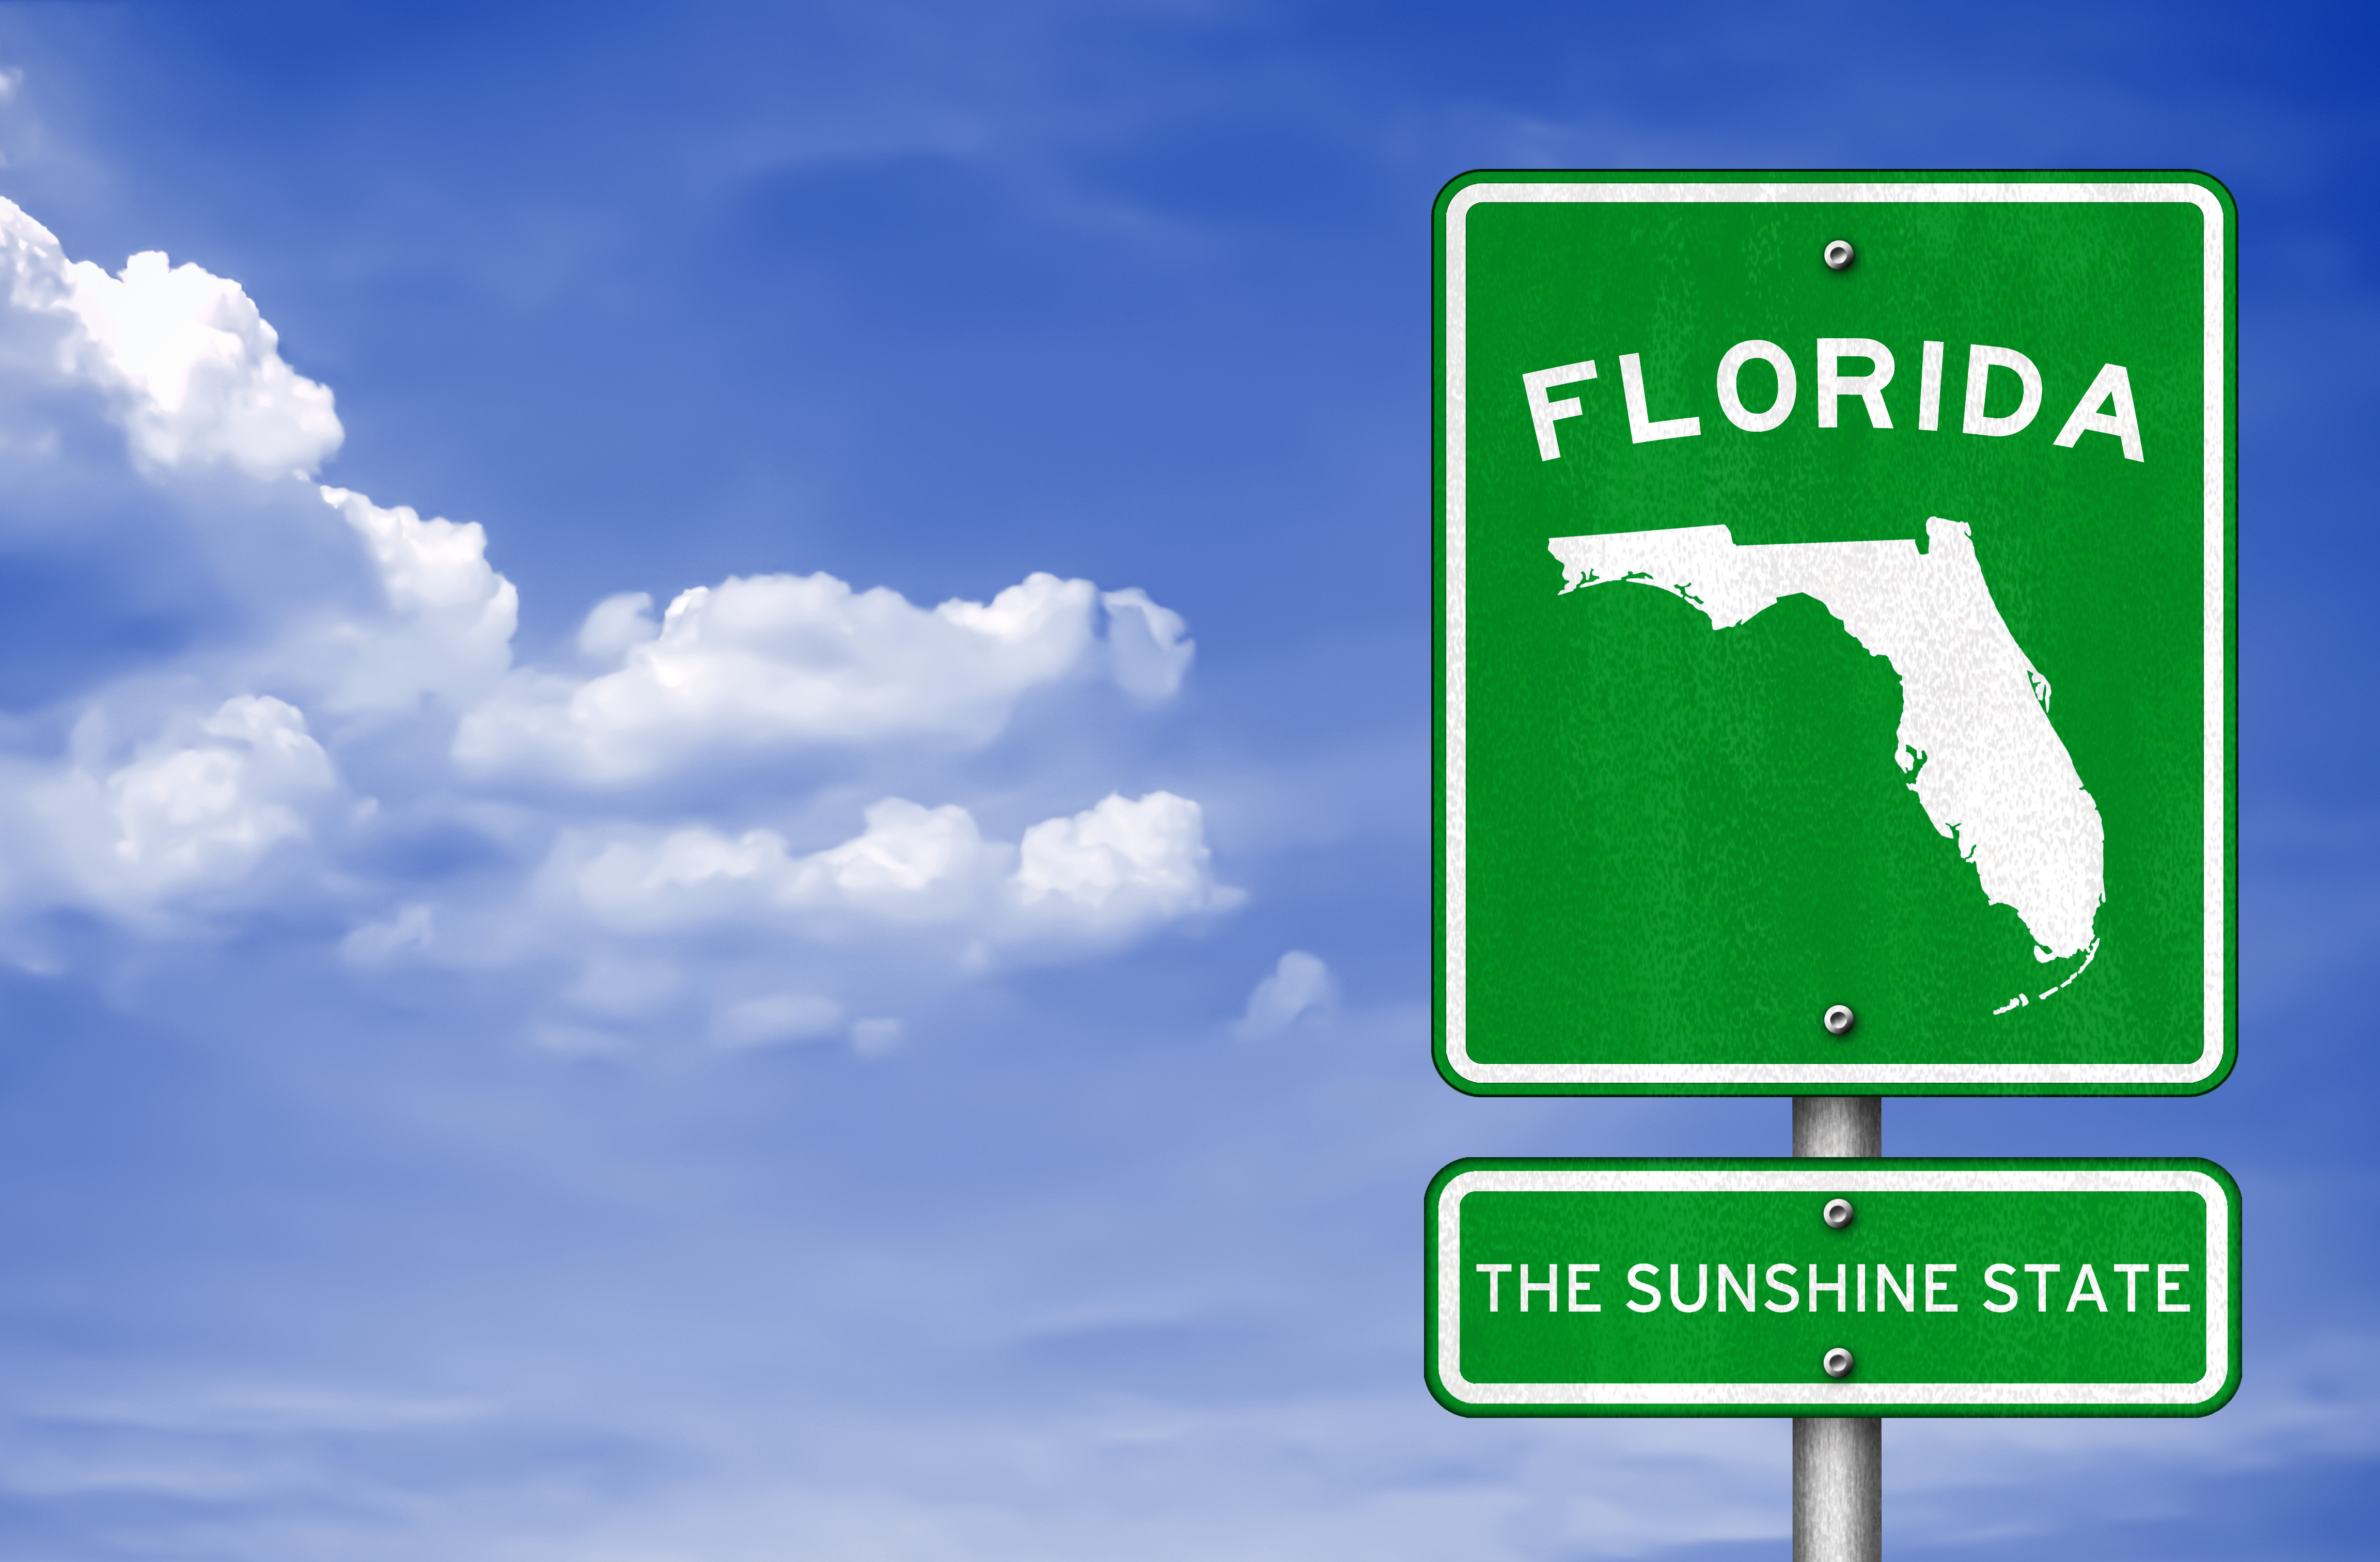 Road sign for Florida with blue sky background